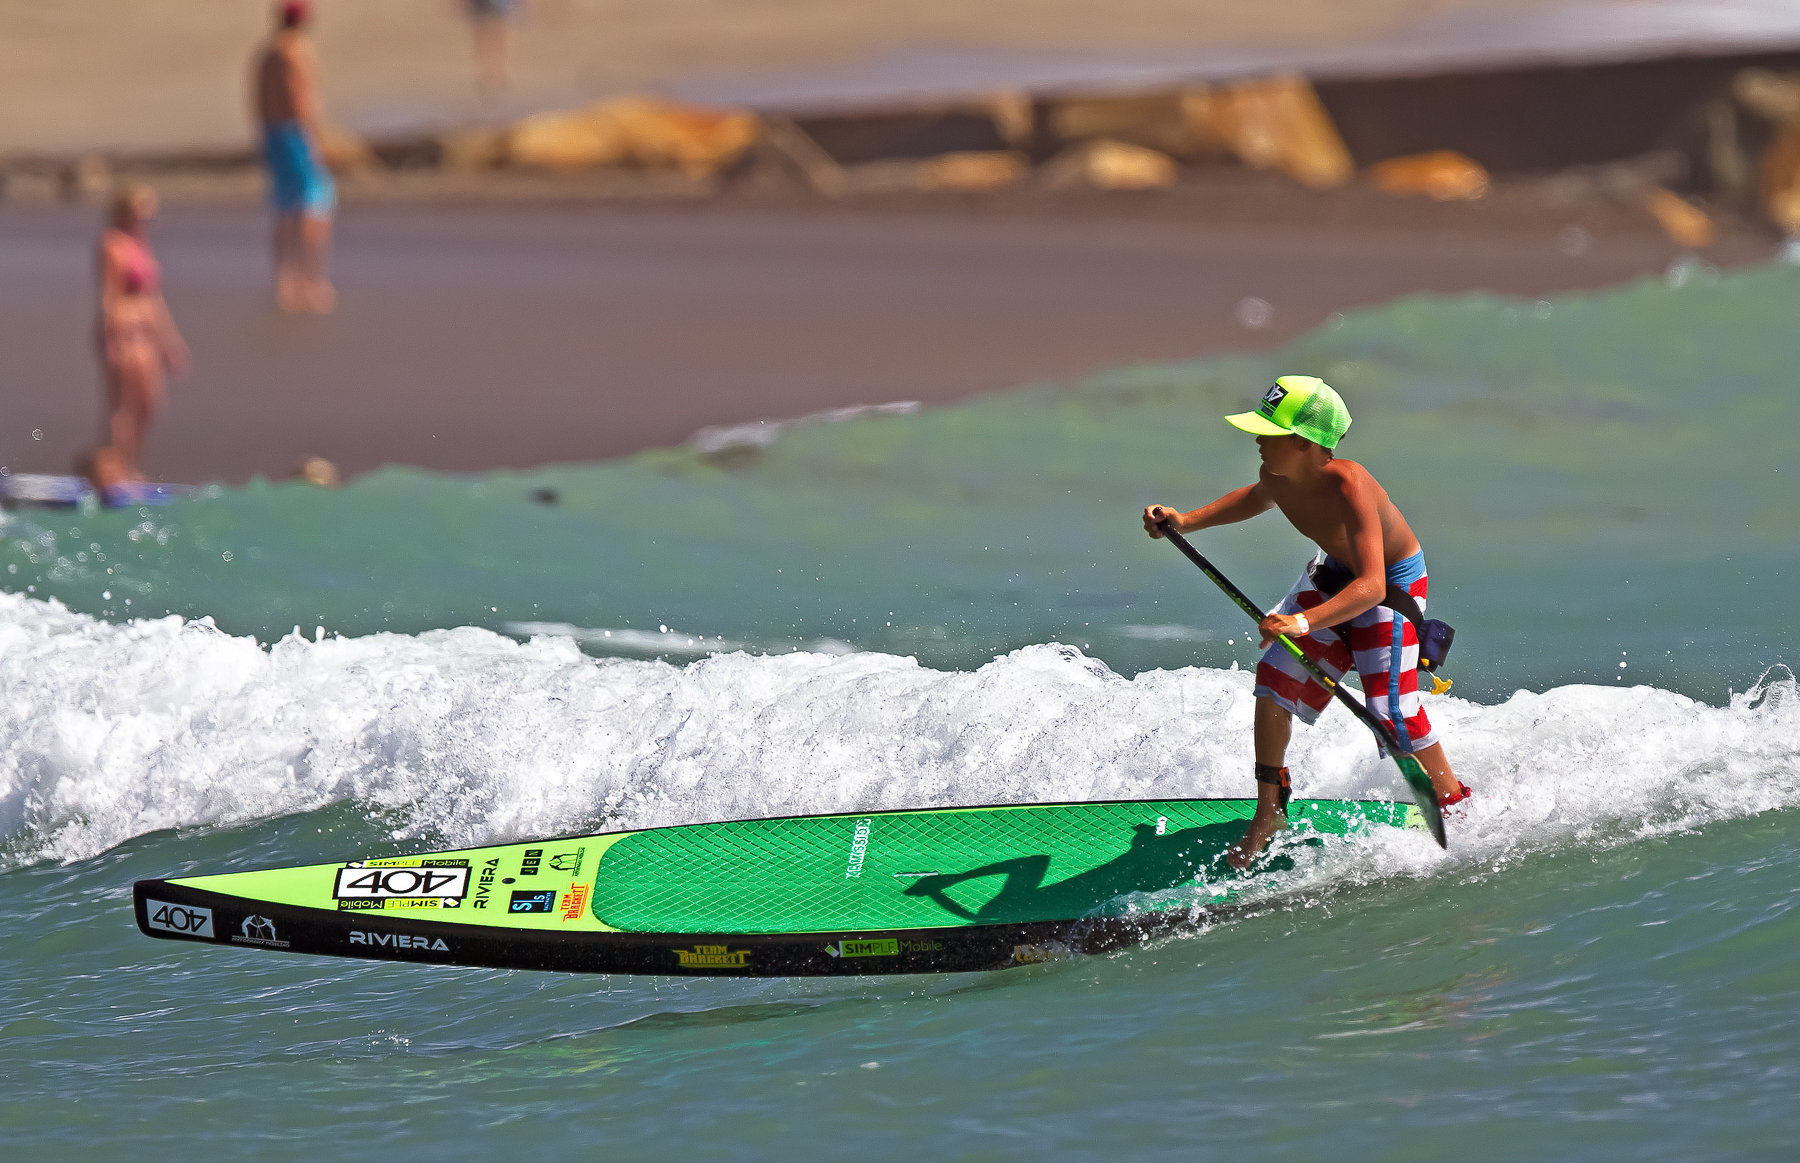 Dana Point, CA - September 30: A paddle boarder catches a wave following the Battle of the Paddle, on September 30, 2012 at Doheny Beach in Dana Point, California.